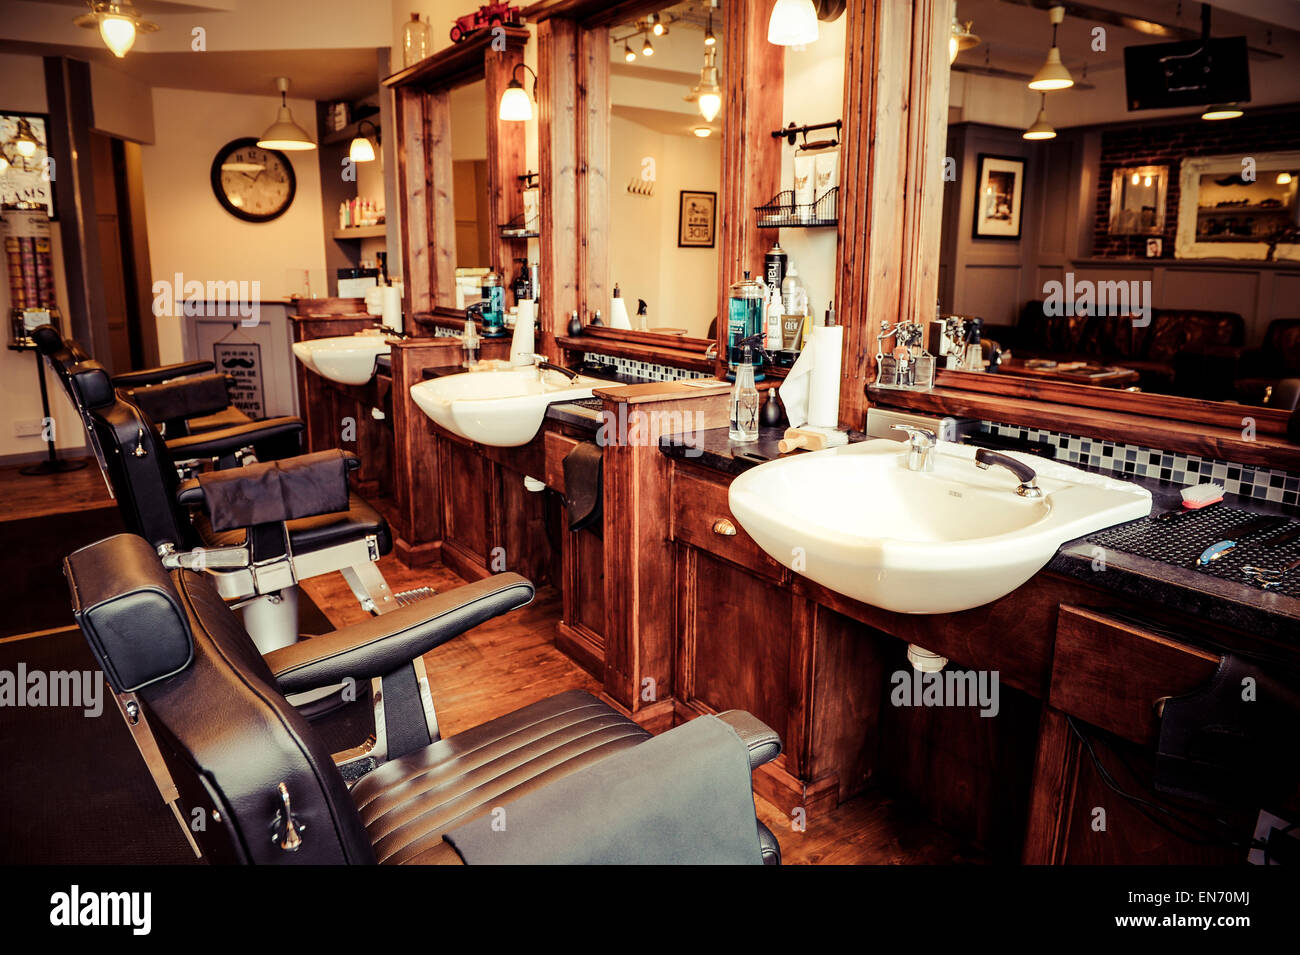 Men 39 s barber shop retro styled interior design stock for The barbershop a hair salon for men